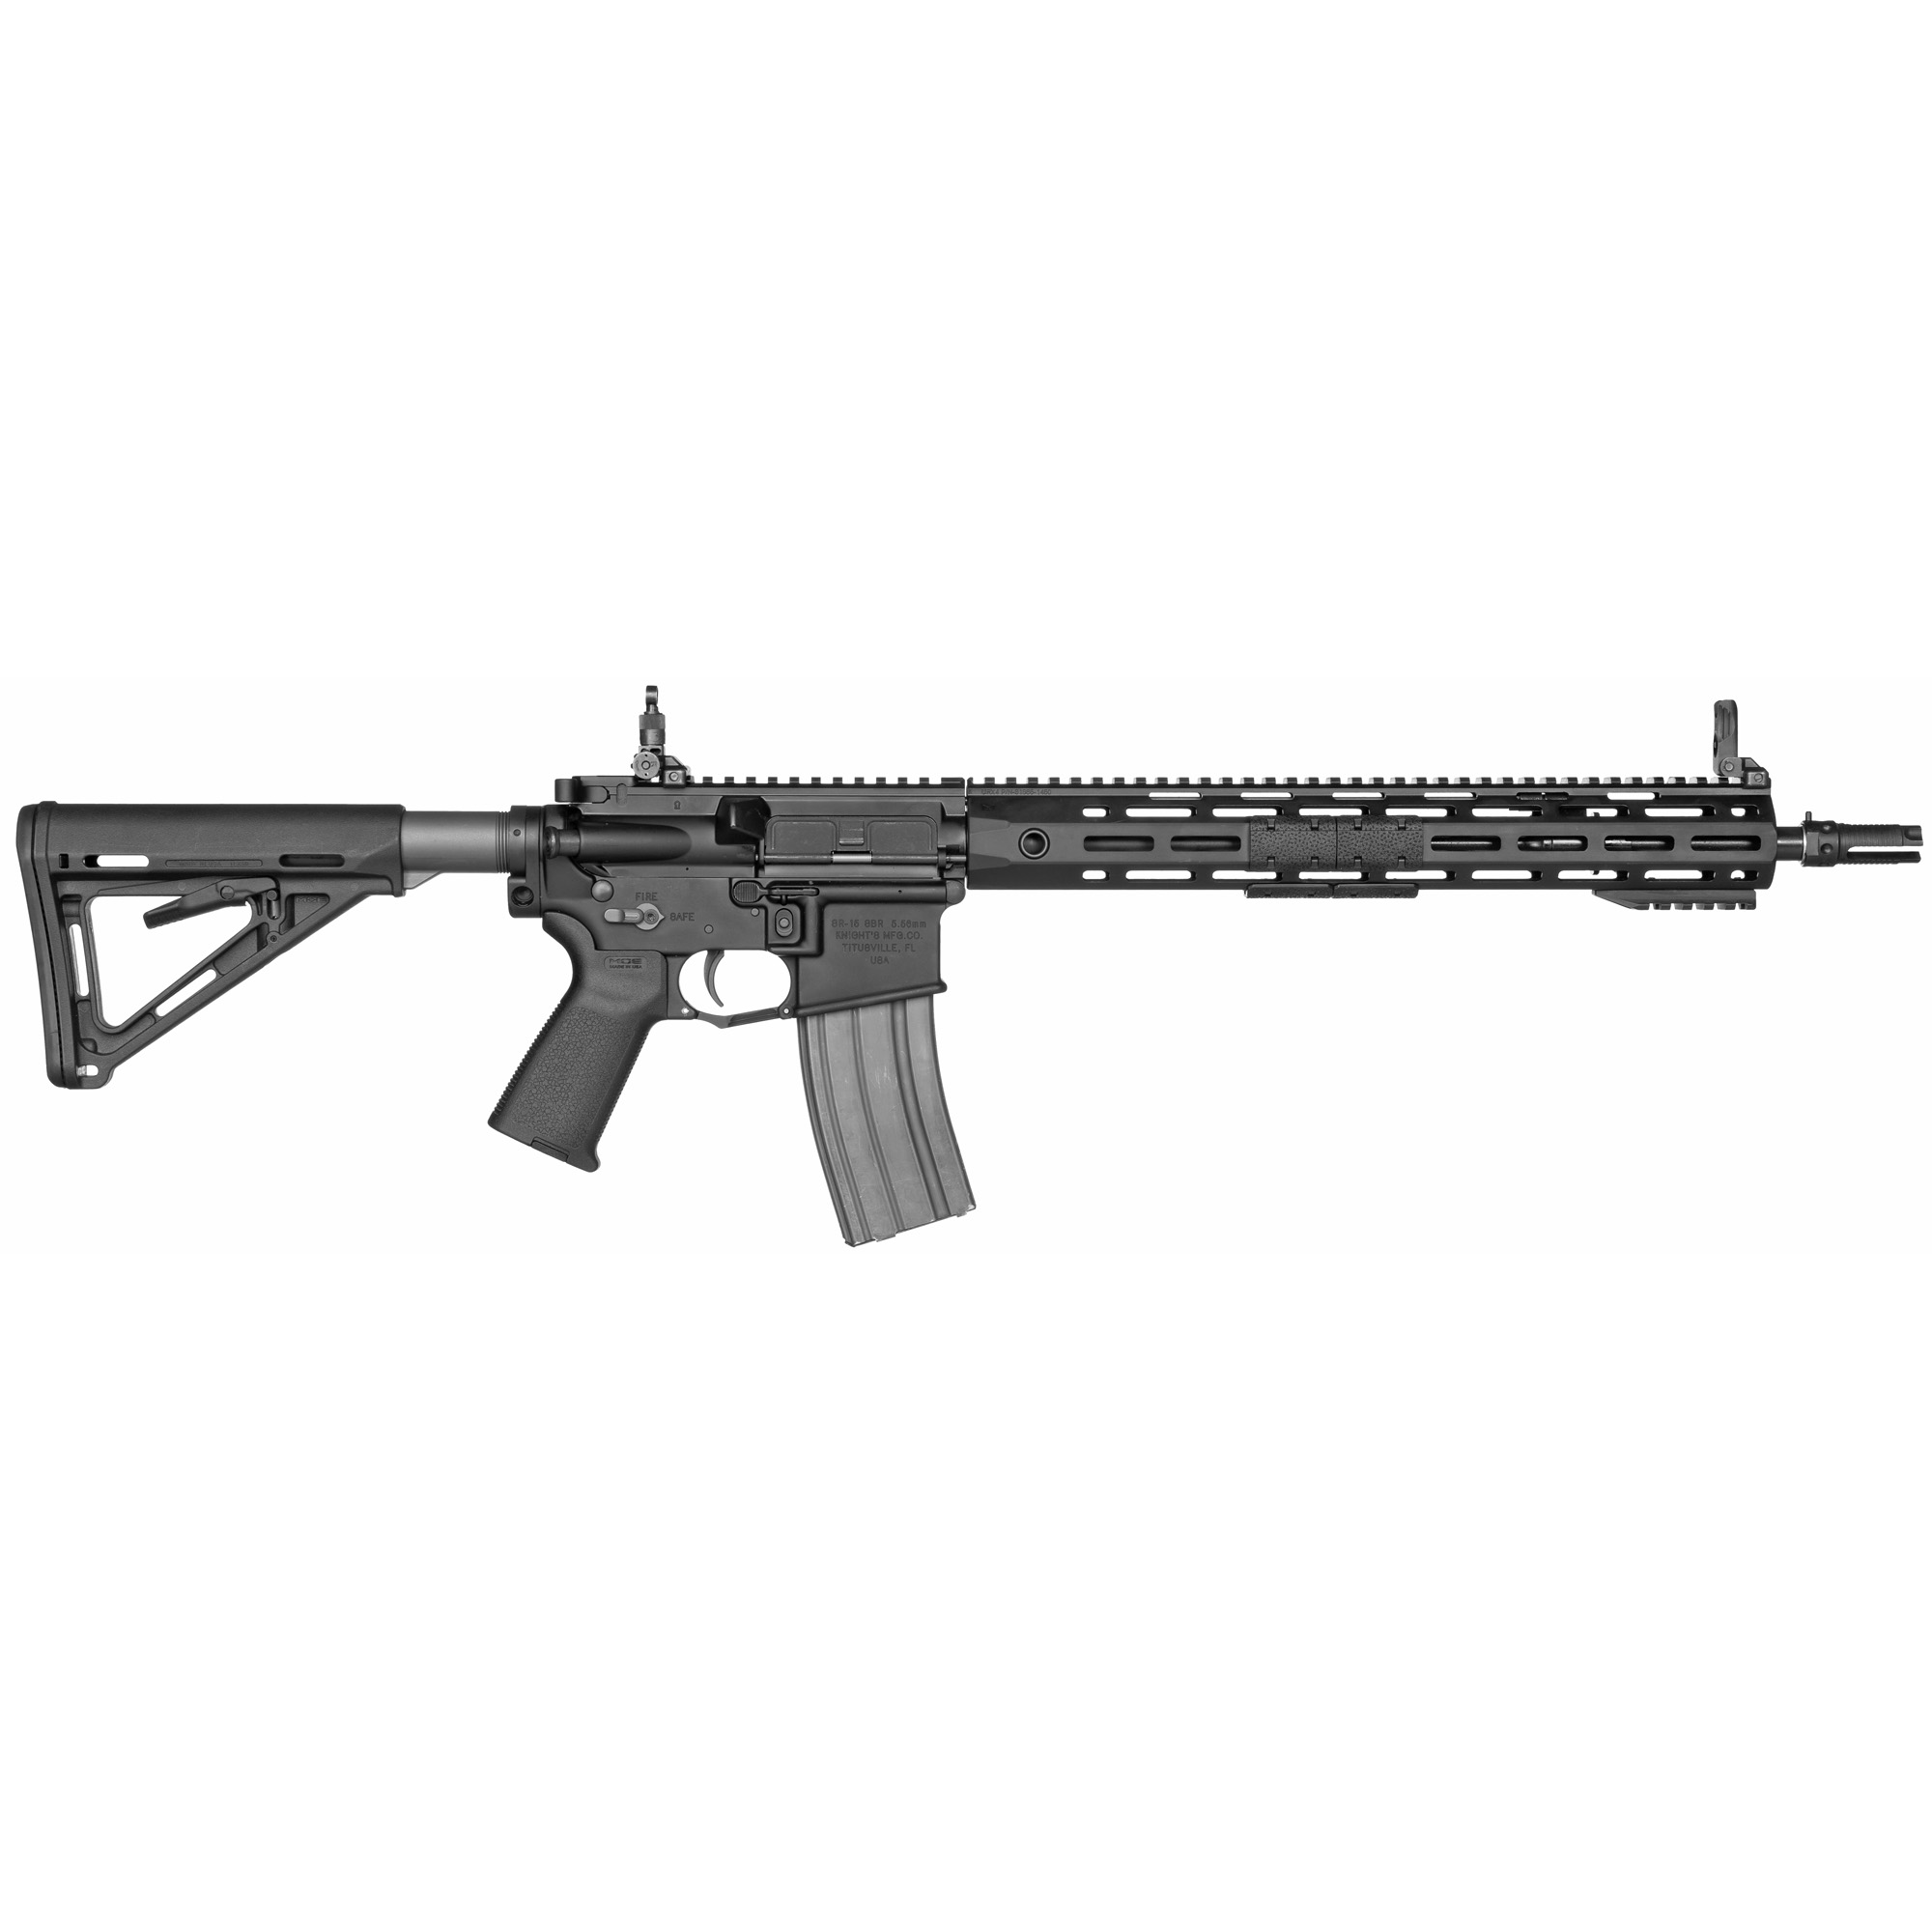 """The SR-15 E3 Mod 2 series 5.56 mm NATO barrel is manufactured for military grade durability"""" and is free-floated inside a URX4 M-LOK handguard. An improved E3 round-lug bolt design both enhances function and increases bolt life far beyond the industry standard. The ambidextrous bolt release"""" selector lever"""" and magazine release offers left-handed users the ergonomic advantages inherent to AR15-based controls."""